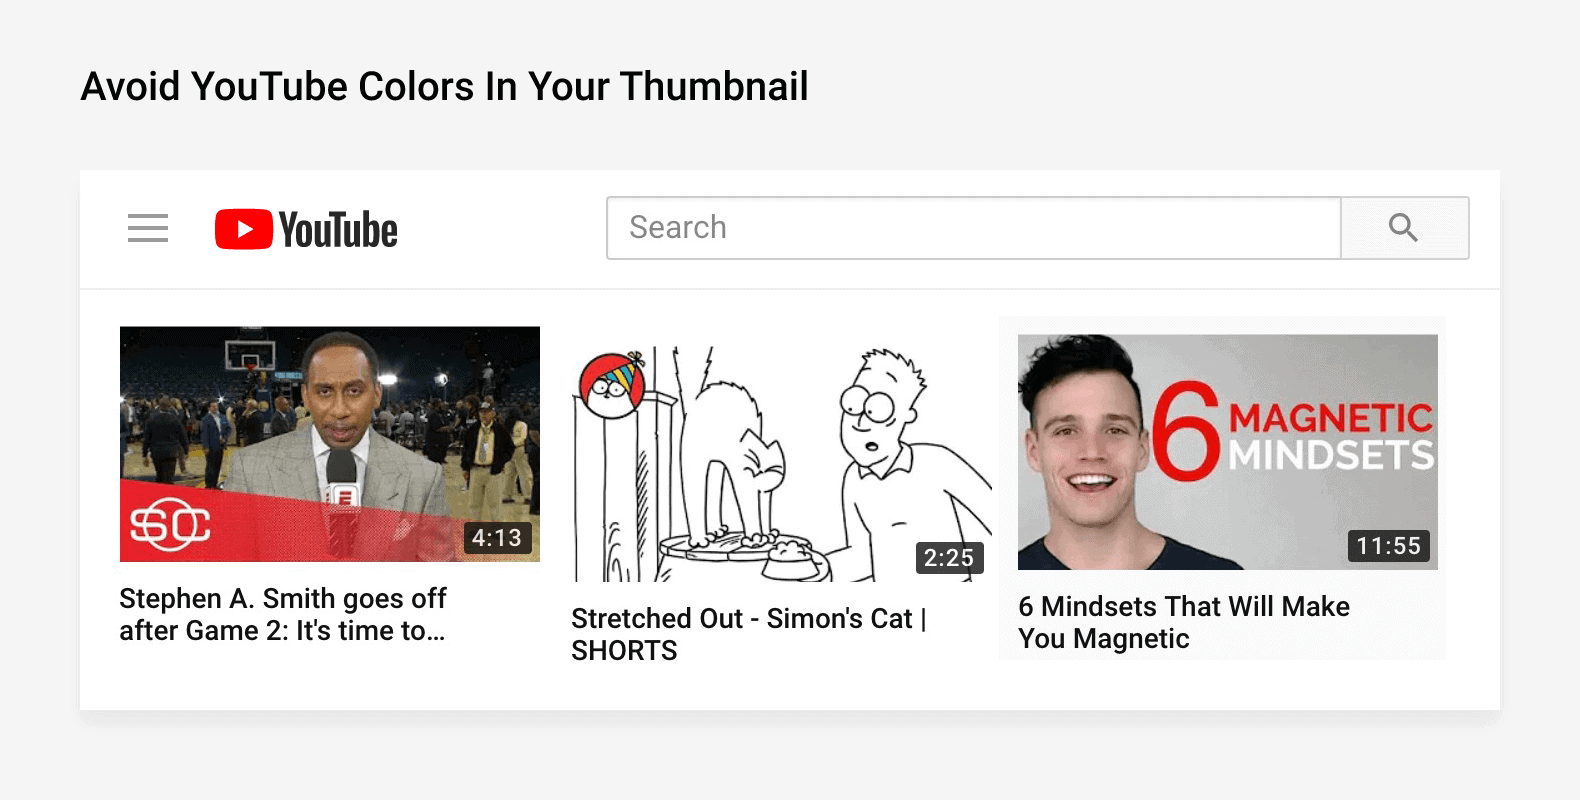 Avoid YouTube colors in your thumbnail